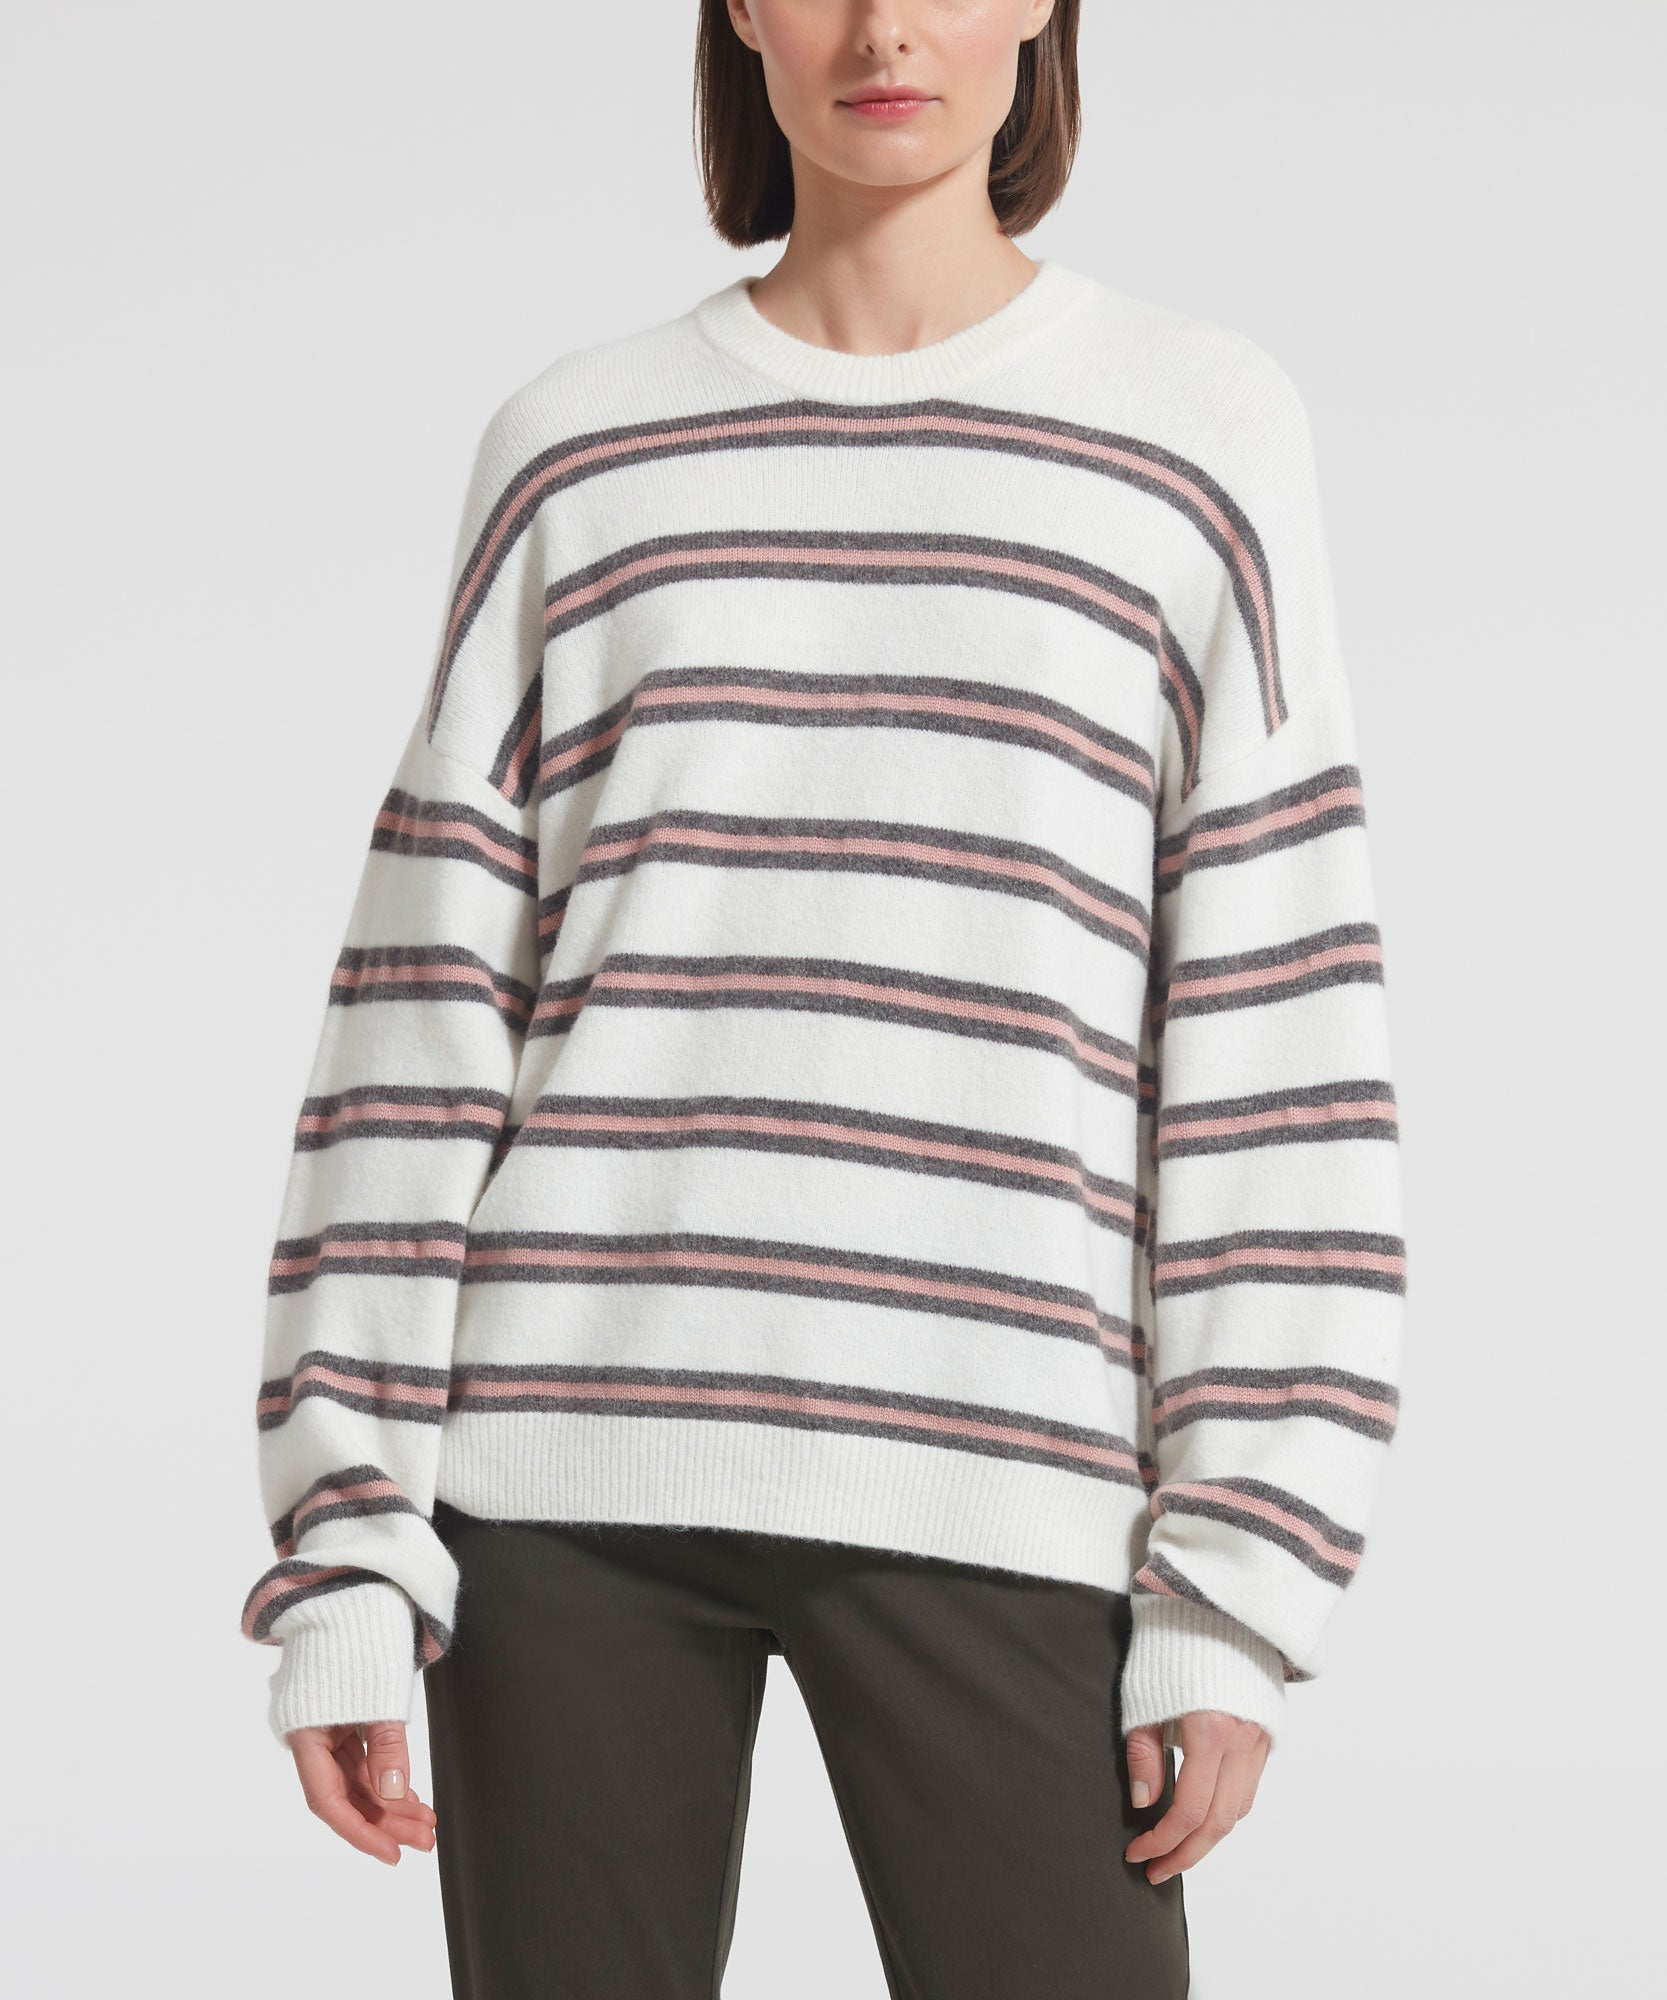 Cashmere Stripe Crew Neck Sweater - Women's Luxe Sweater by ATM Anthony Thomas Melillo